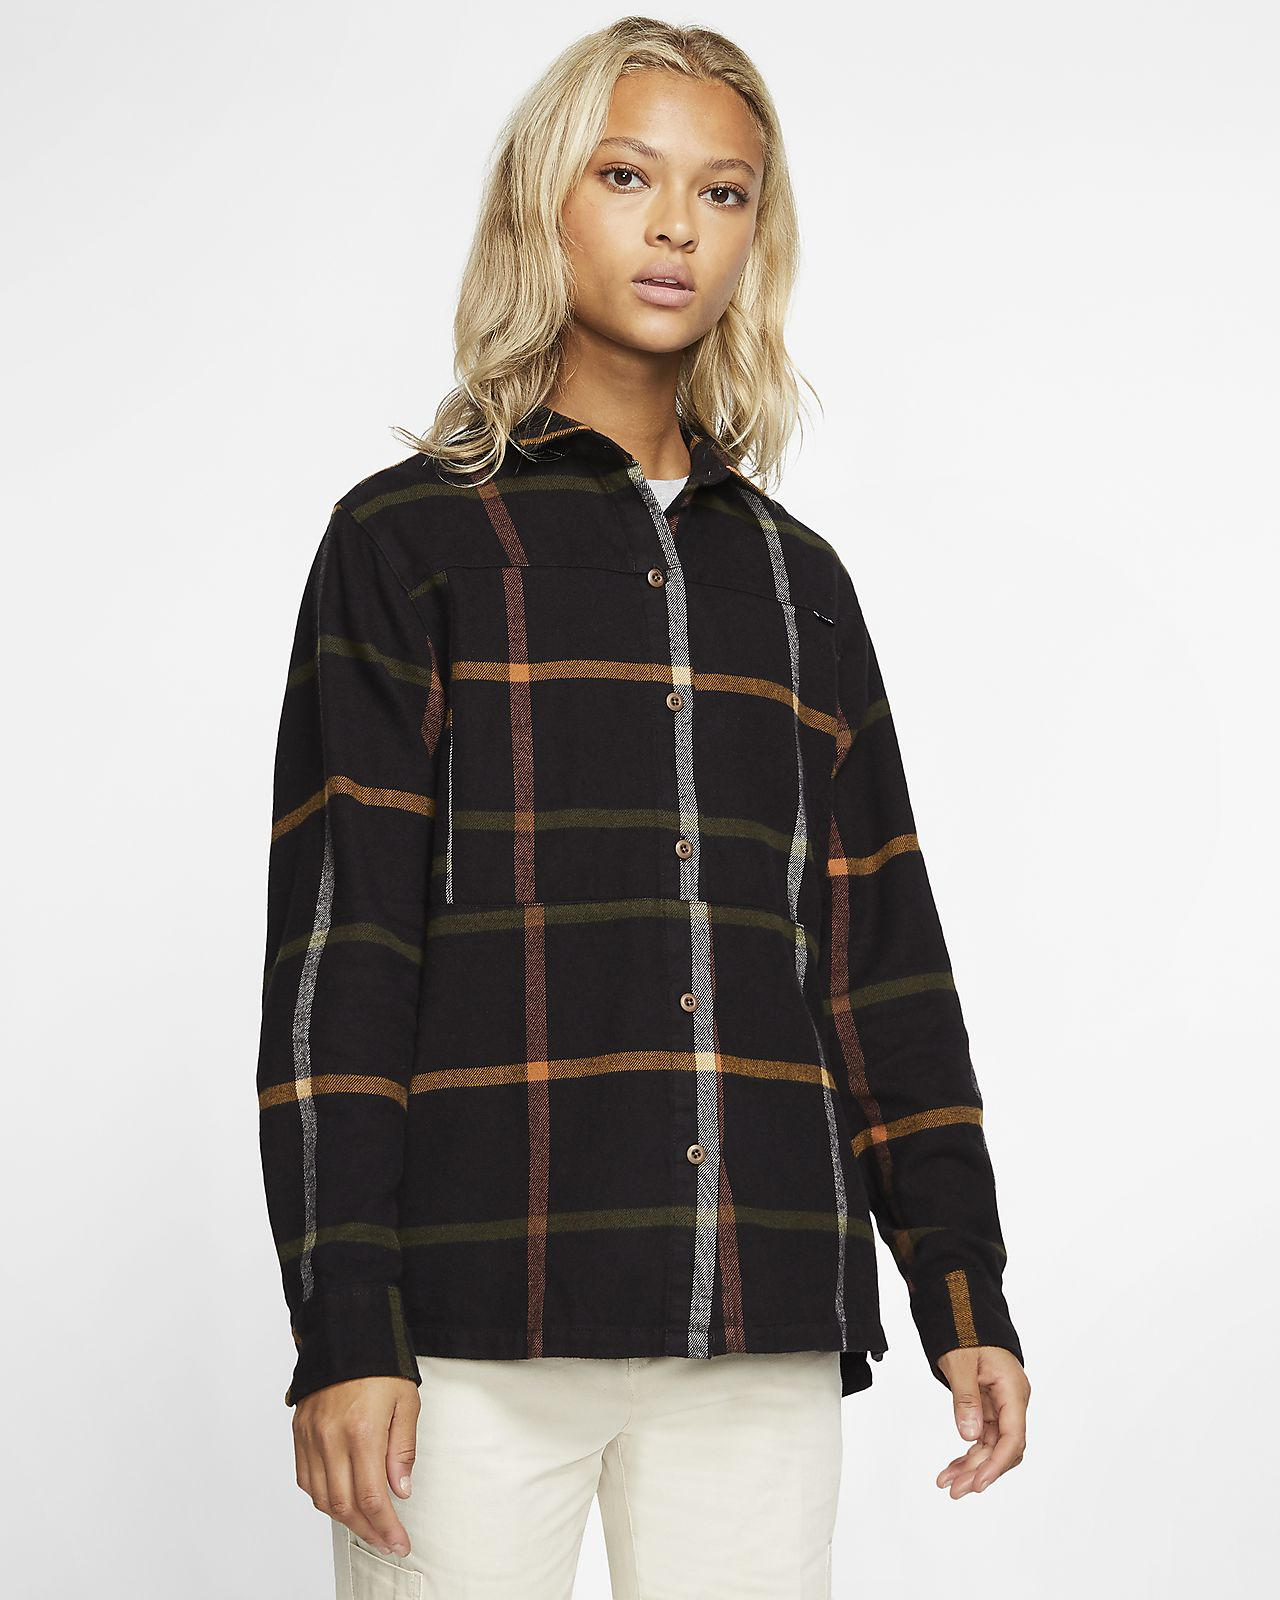 Hurley Wilson Women's Long-Sleeve Flannel